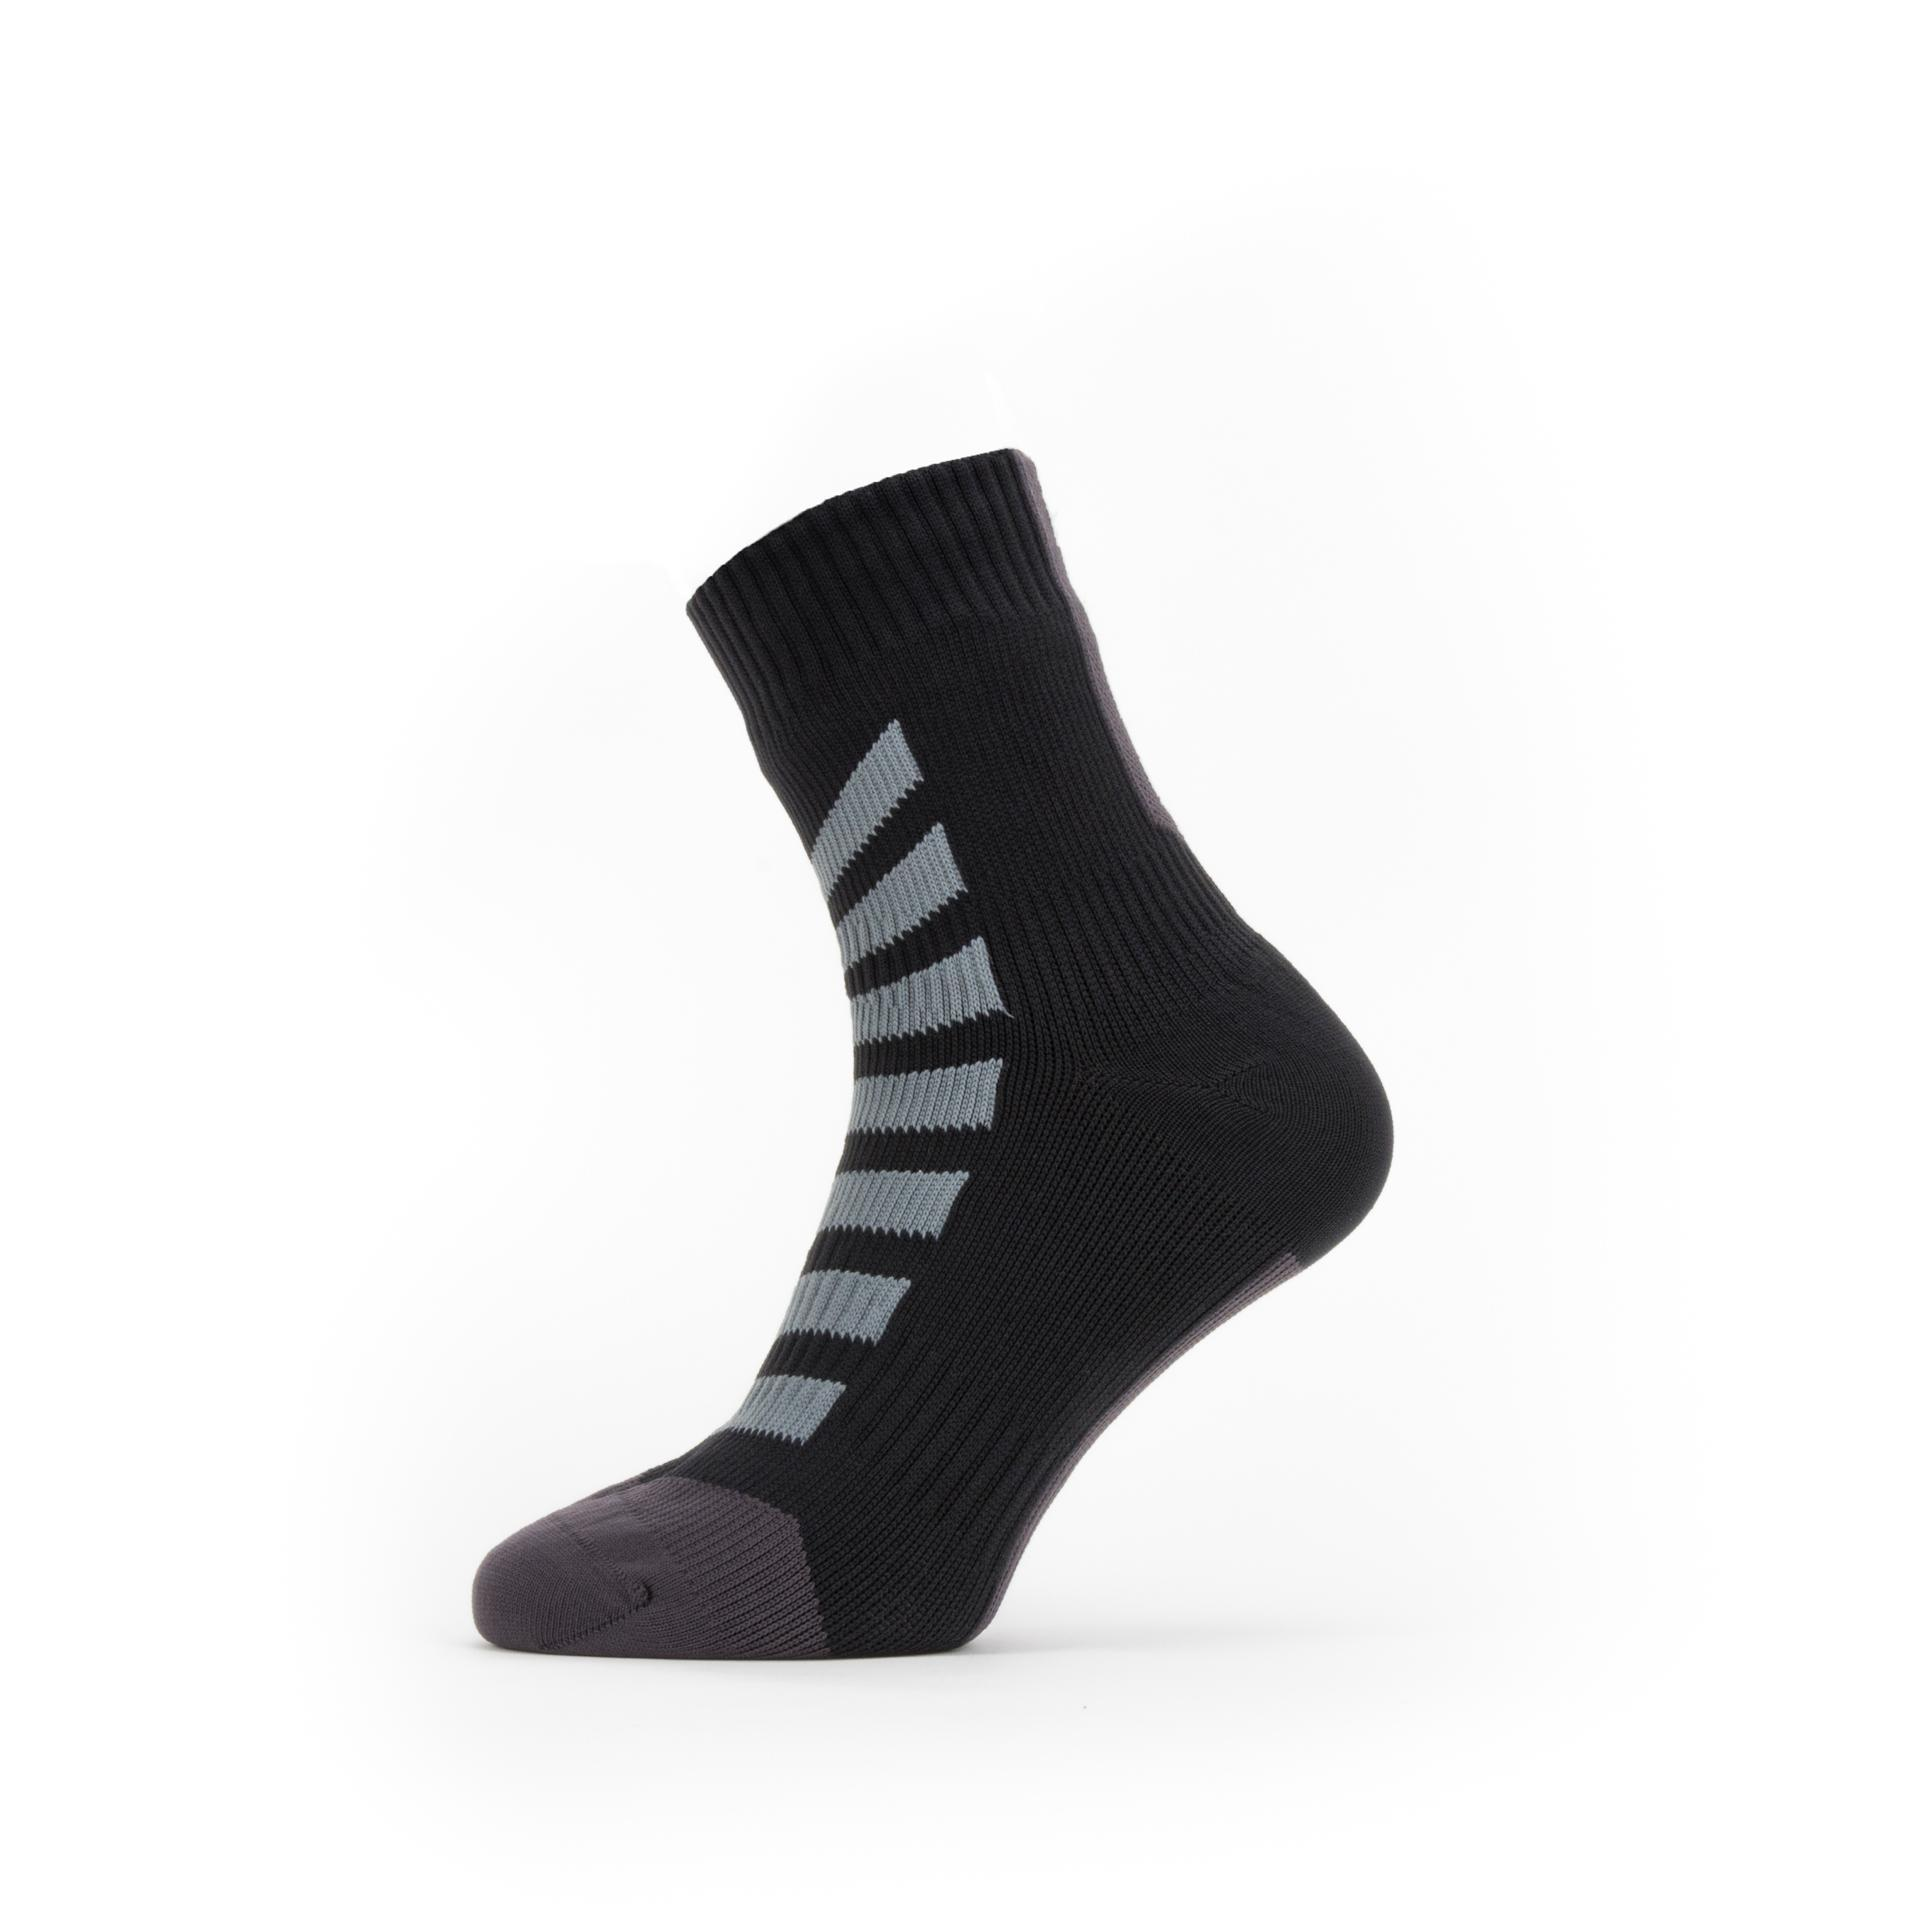 Afbeelding Sealskinz Fietssokken waterdicht voor Heren Zwart Grijs / Waterproof All Weather Ankle Length Sock with Hydrostop